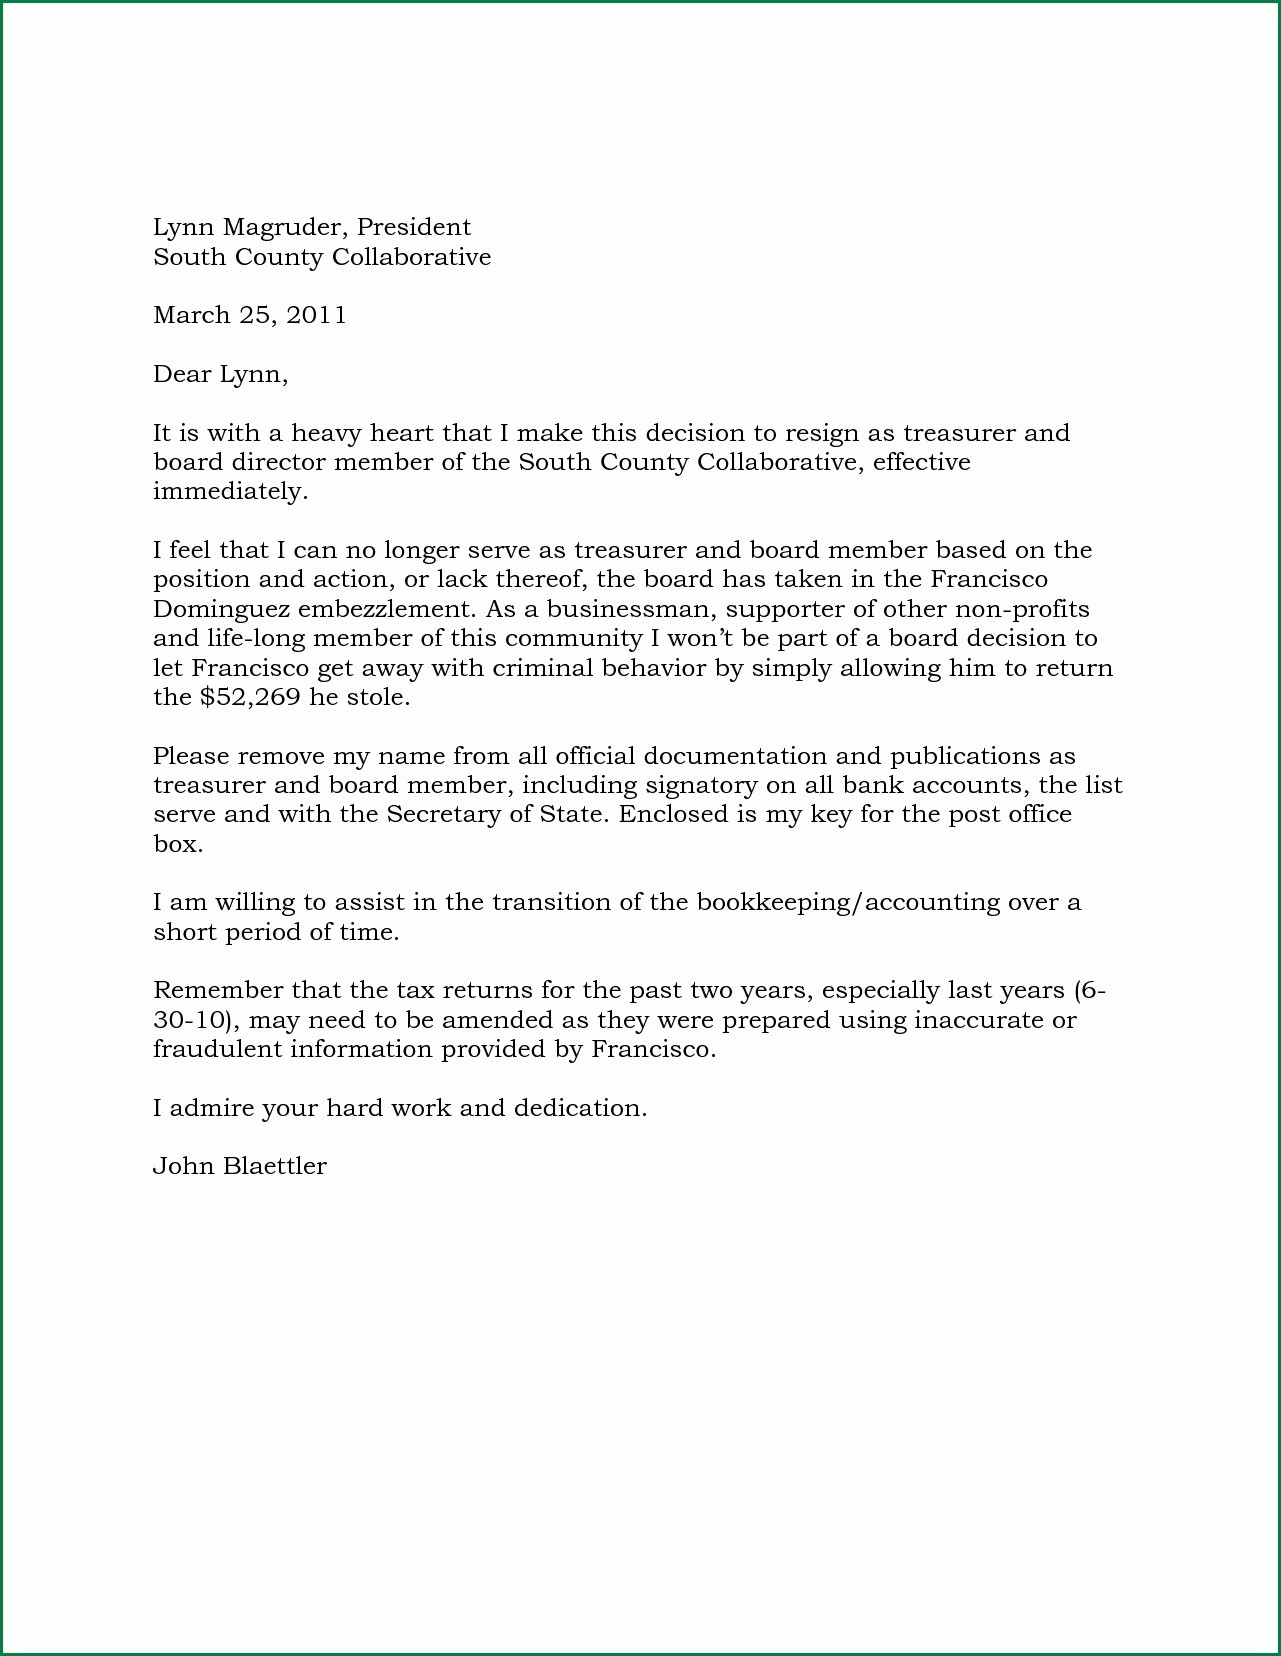 Sample Letters to Board Members Unique Resignation Letter From Board Directors Template